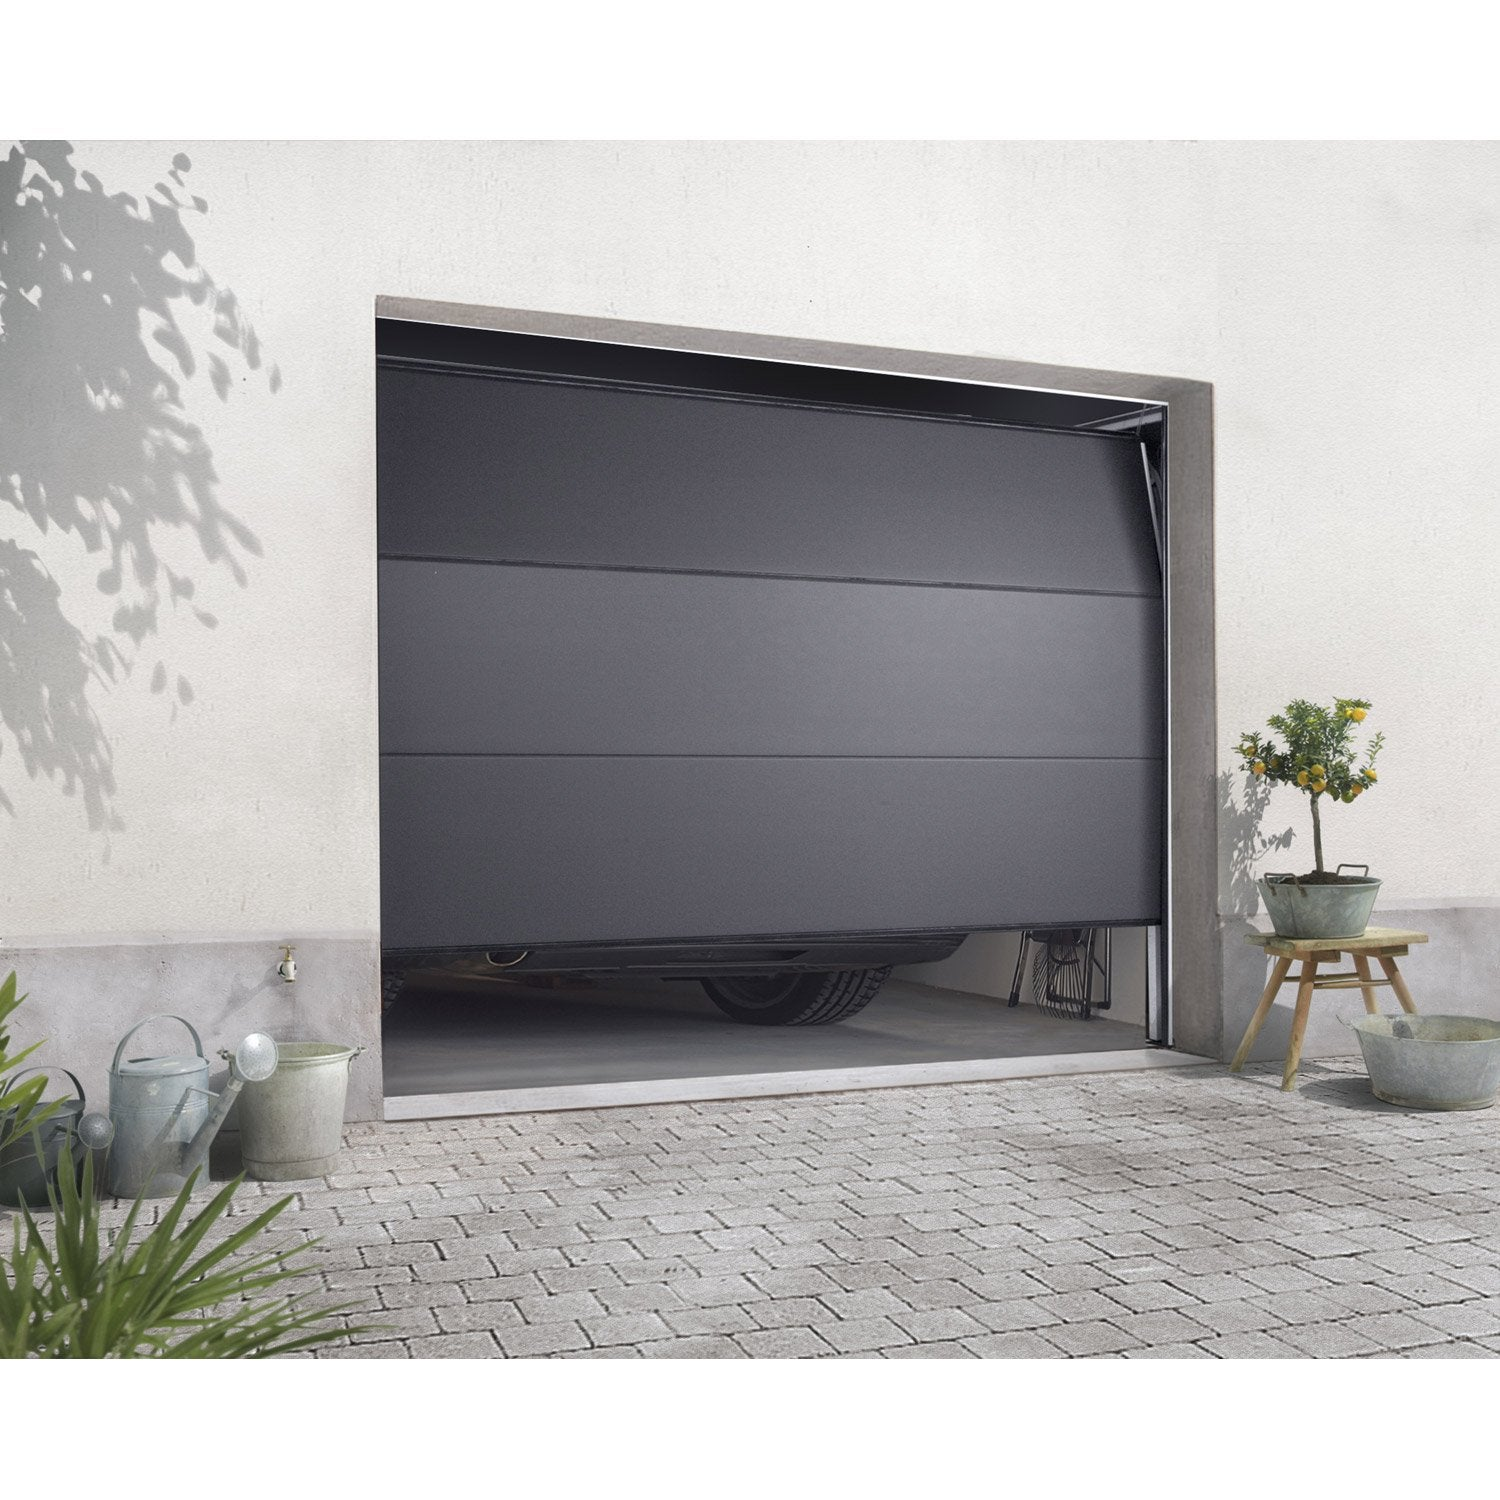 portillon pvc gris anthracite pas cher portillon aluminium gris anthracite habitat et jardin. Black Bedroom Furniture Sets. Home Design Ideas